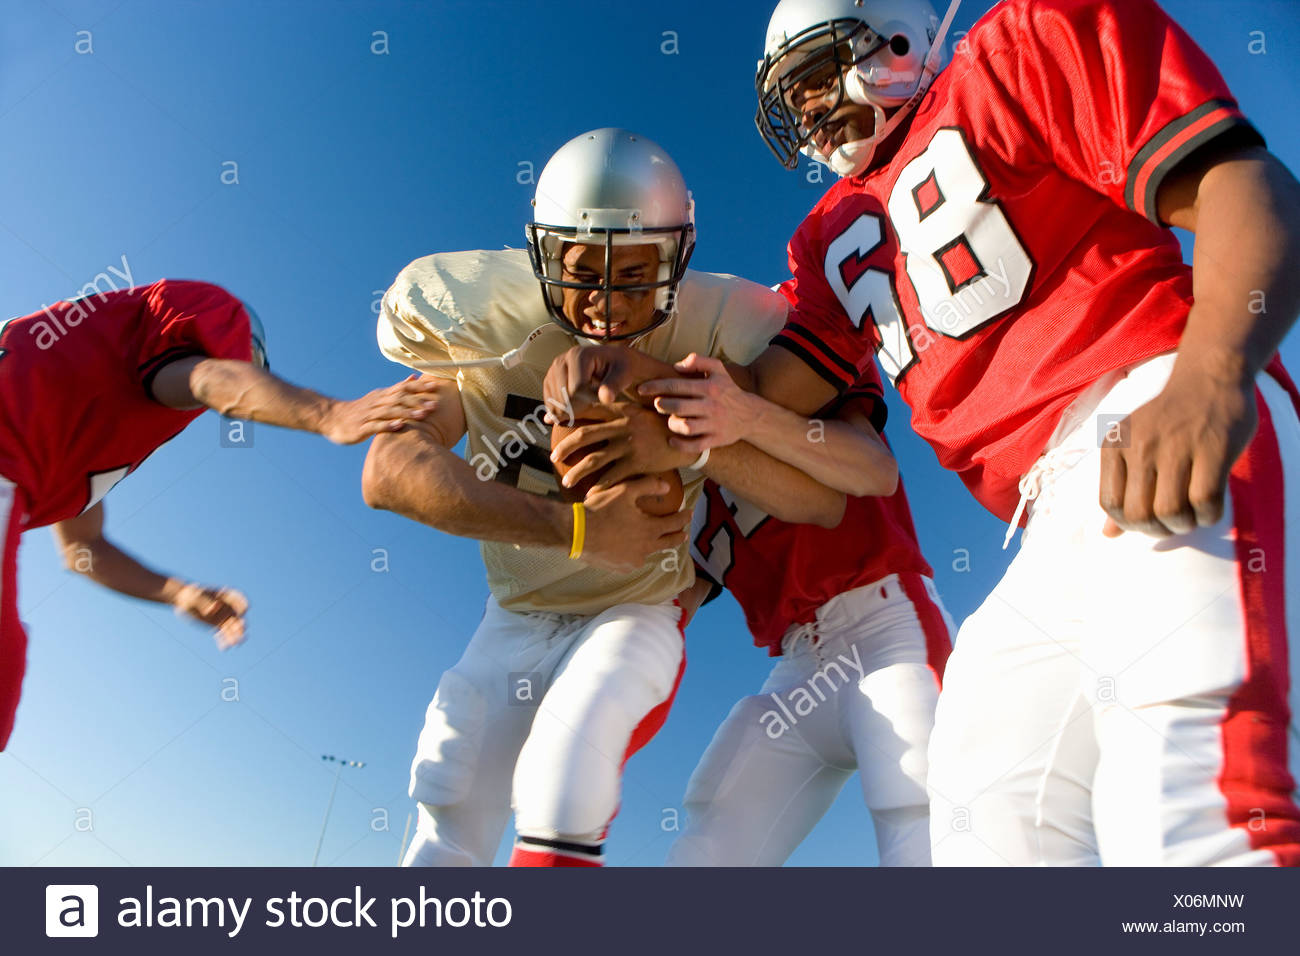 American football players tackling opposing player with ball, low angle view - Stock Image